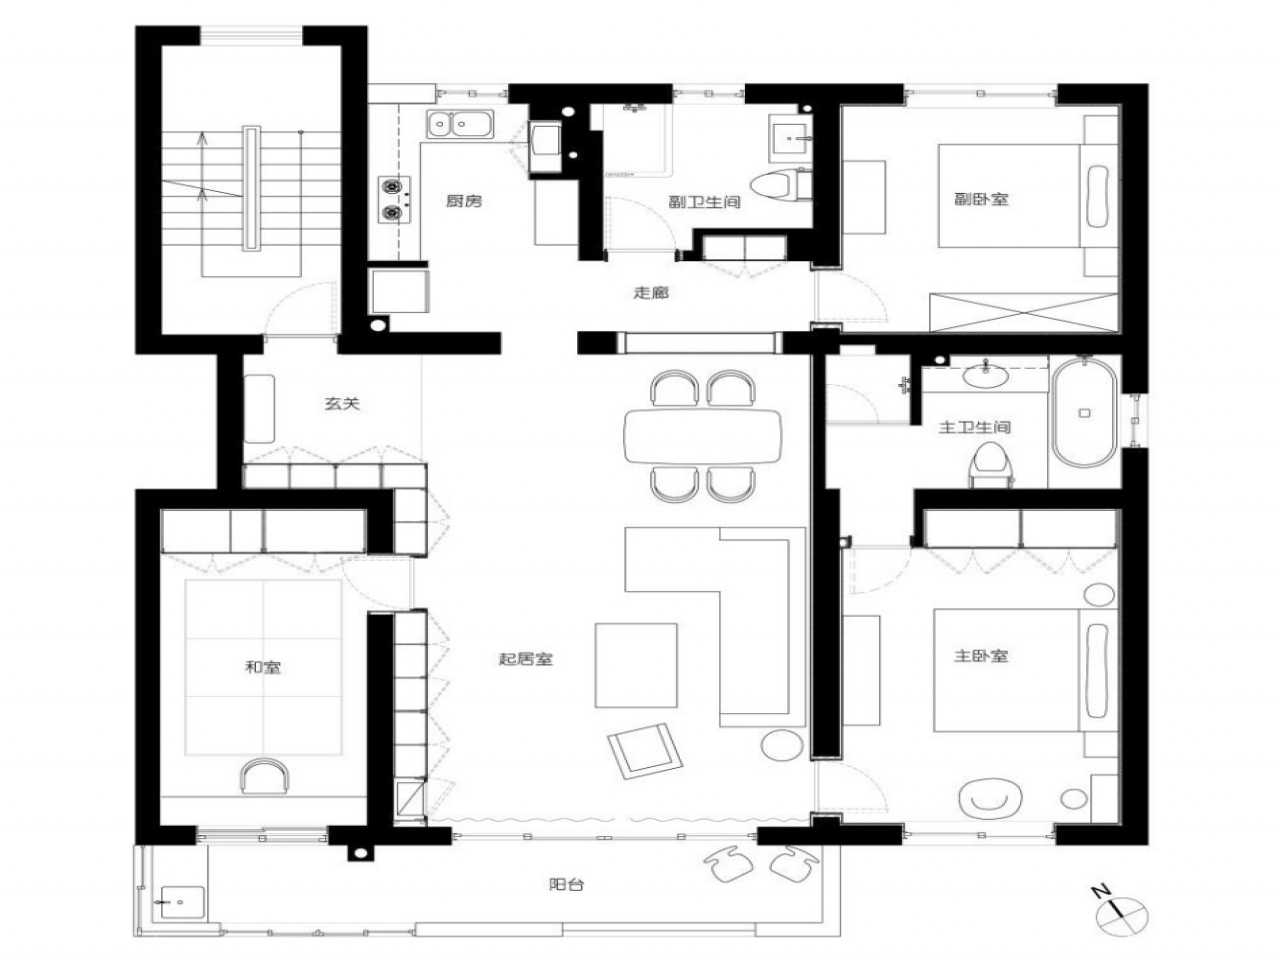 Small house floor plans modern house floor plans modern for Small modern house floor plans